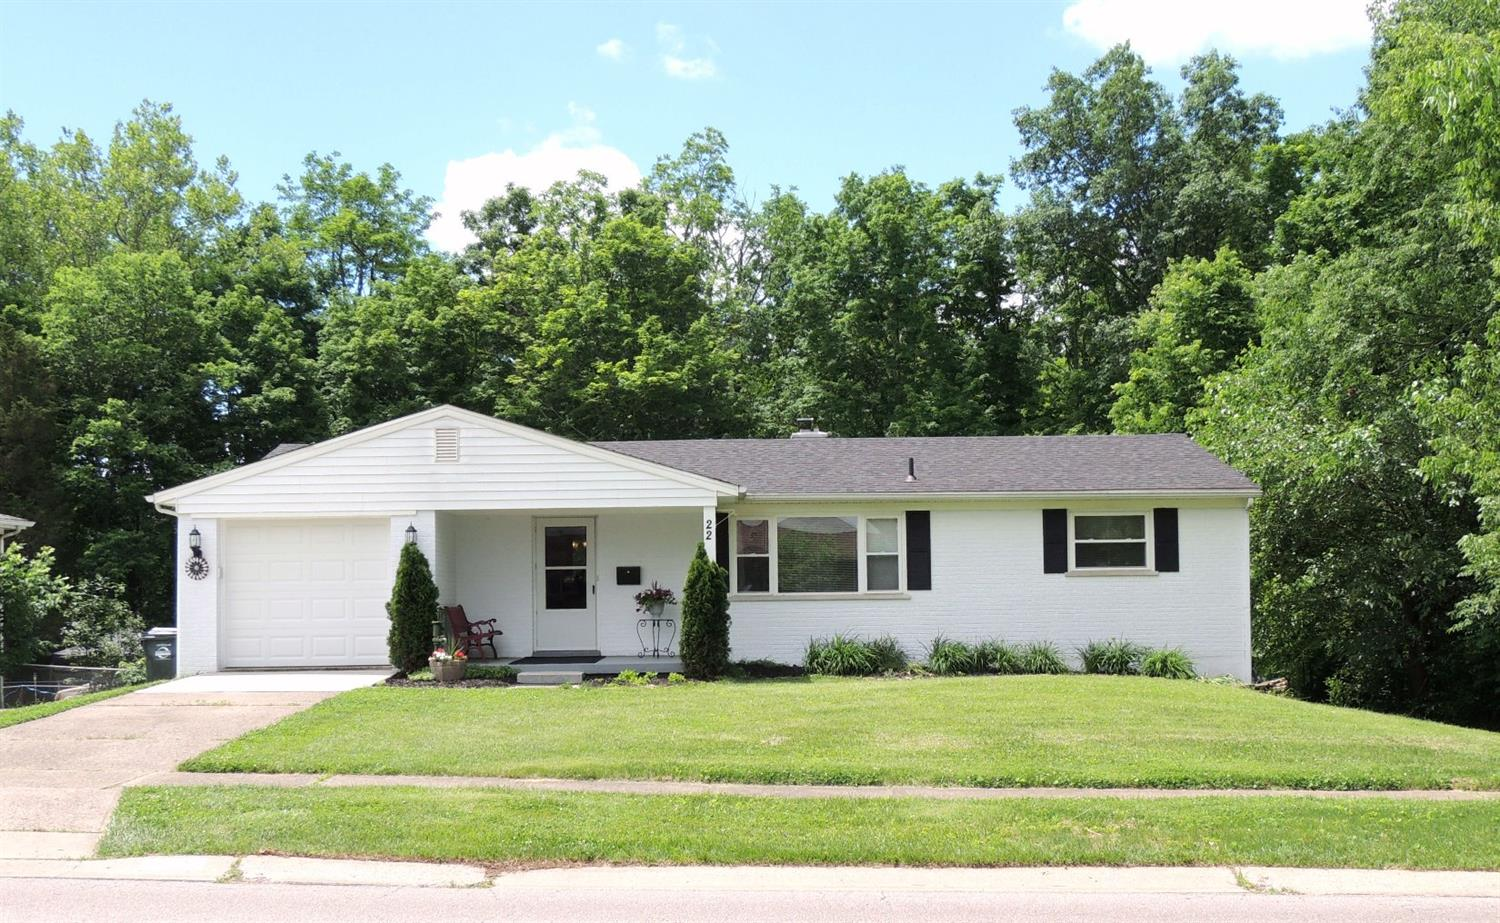 22 Crestview Drive, Milford, OH 45150